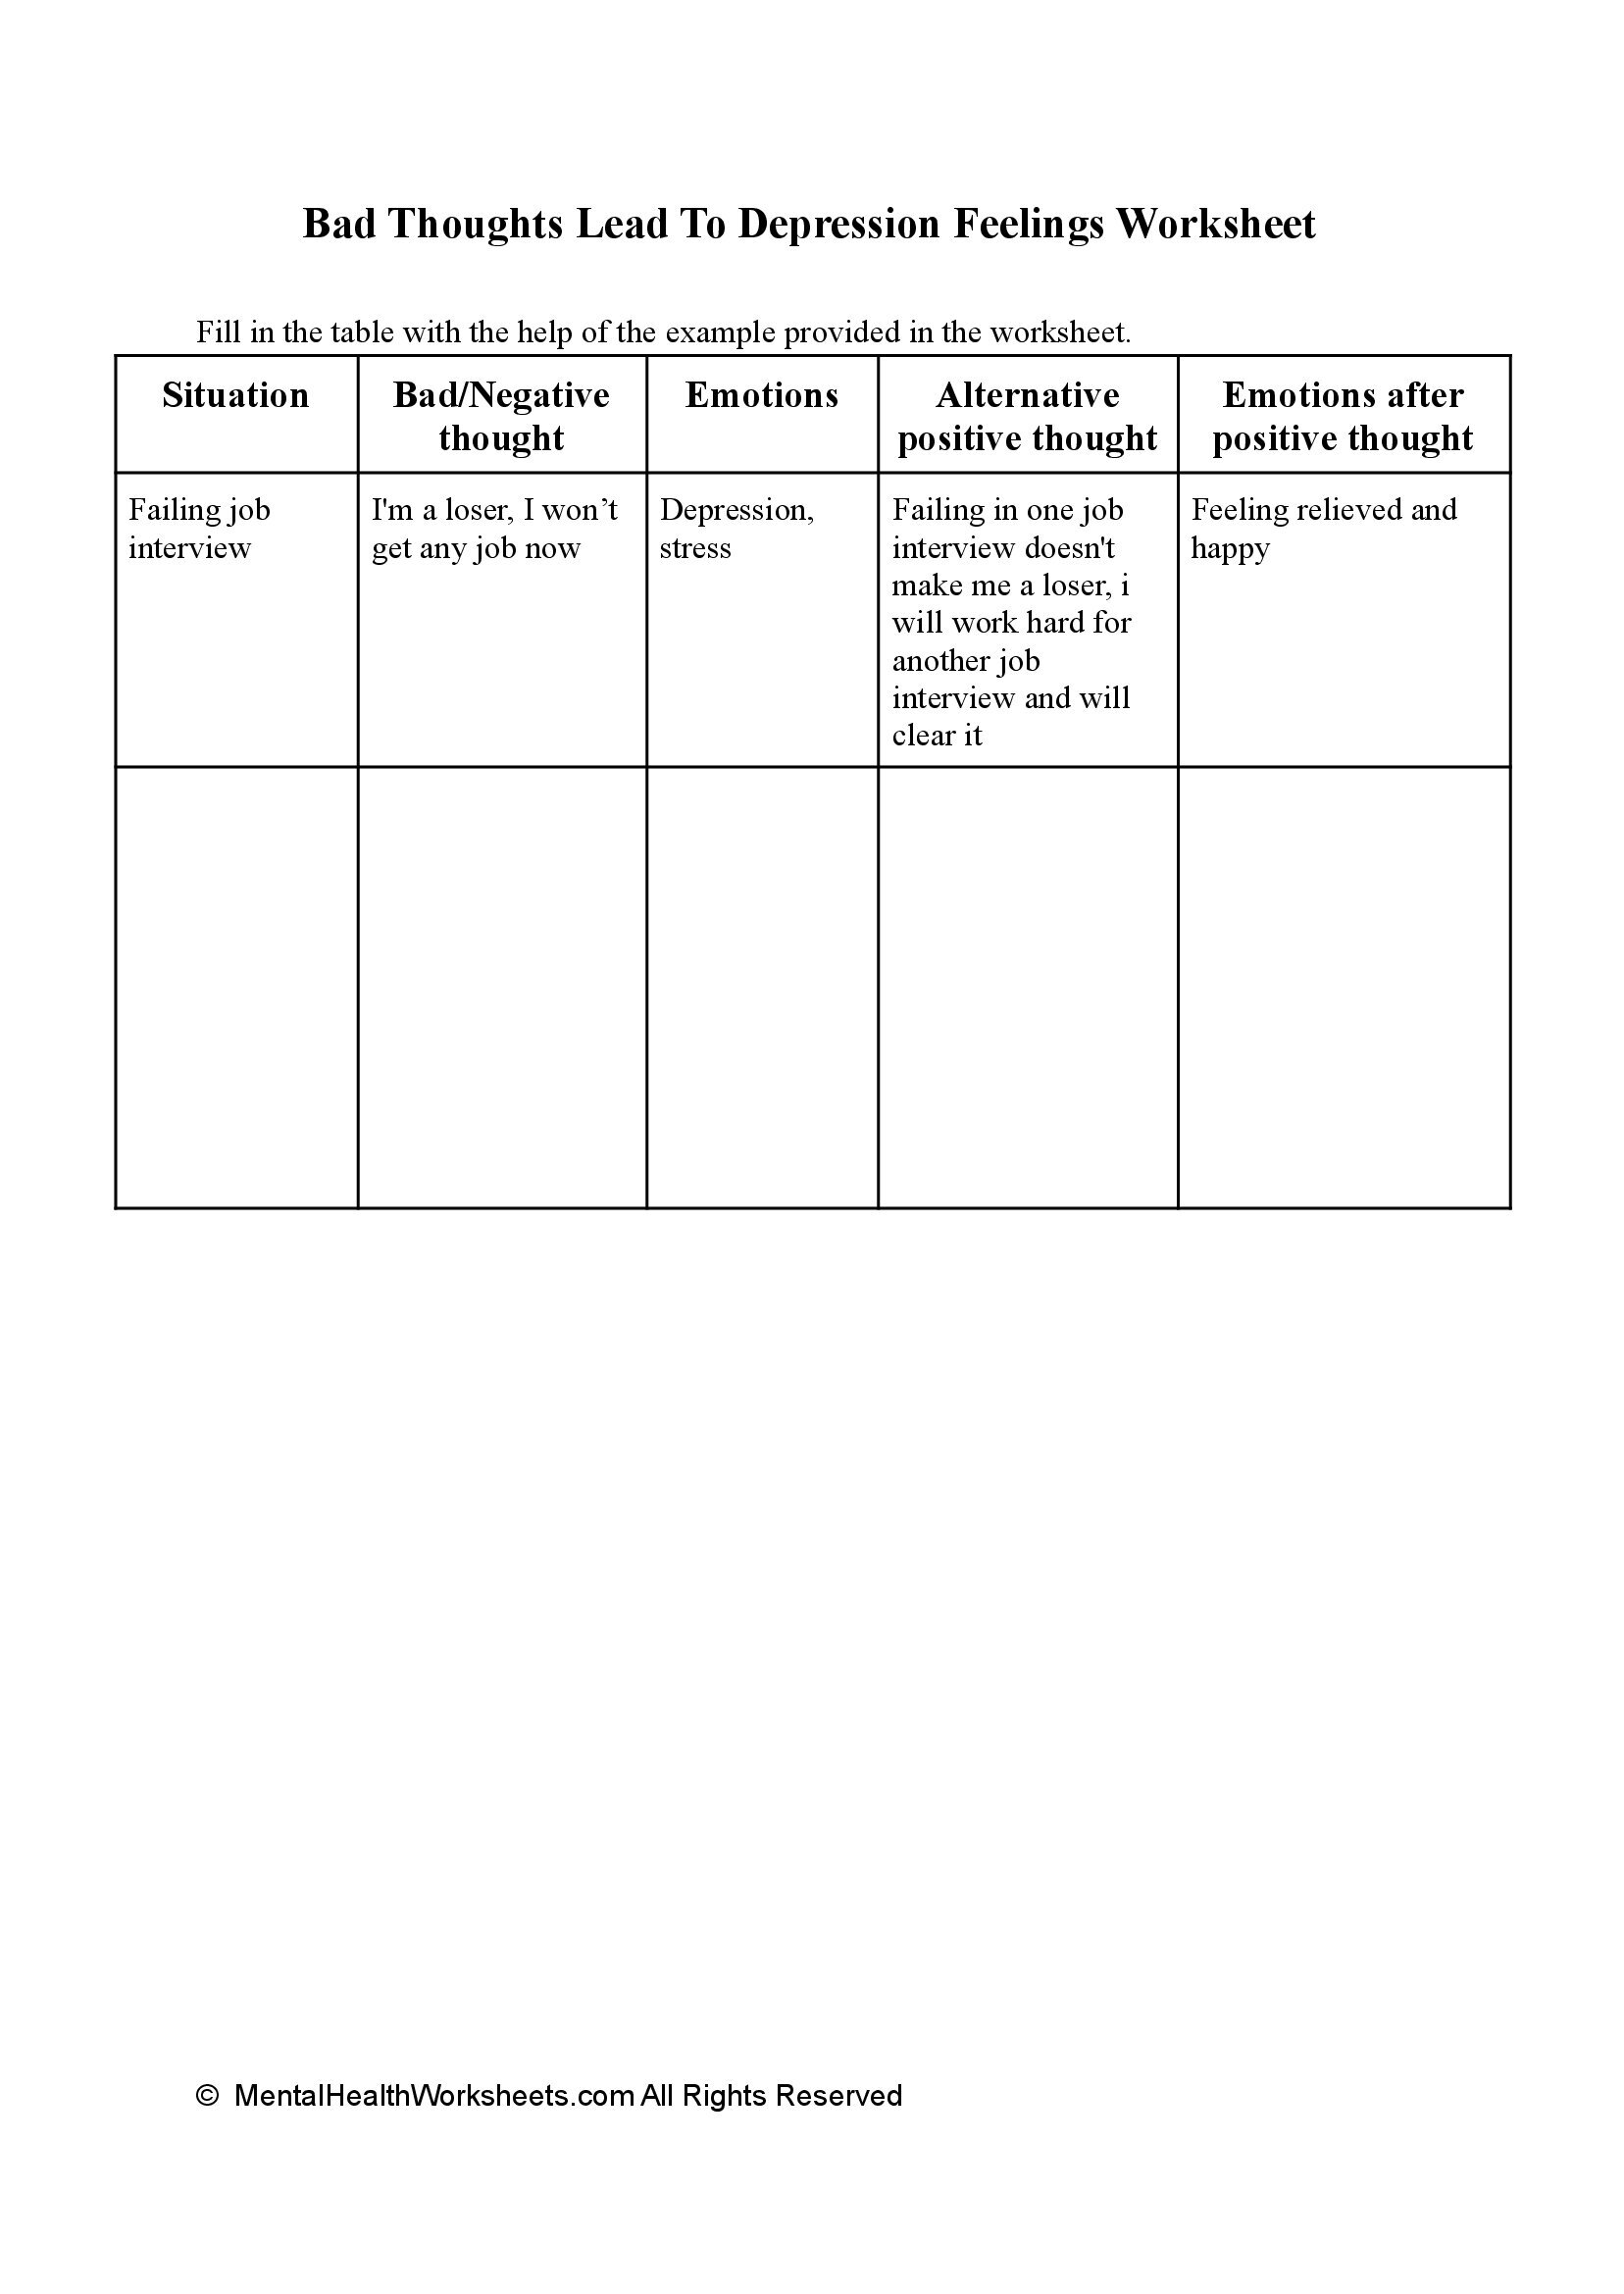 Bad Thoughts Lead To Depression Feelings Worksheet